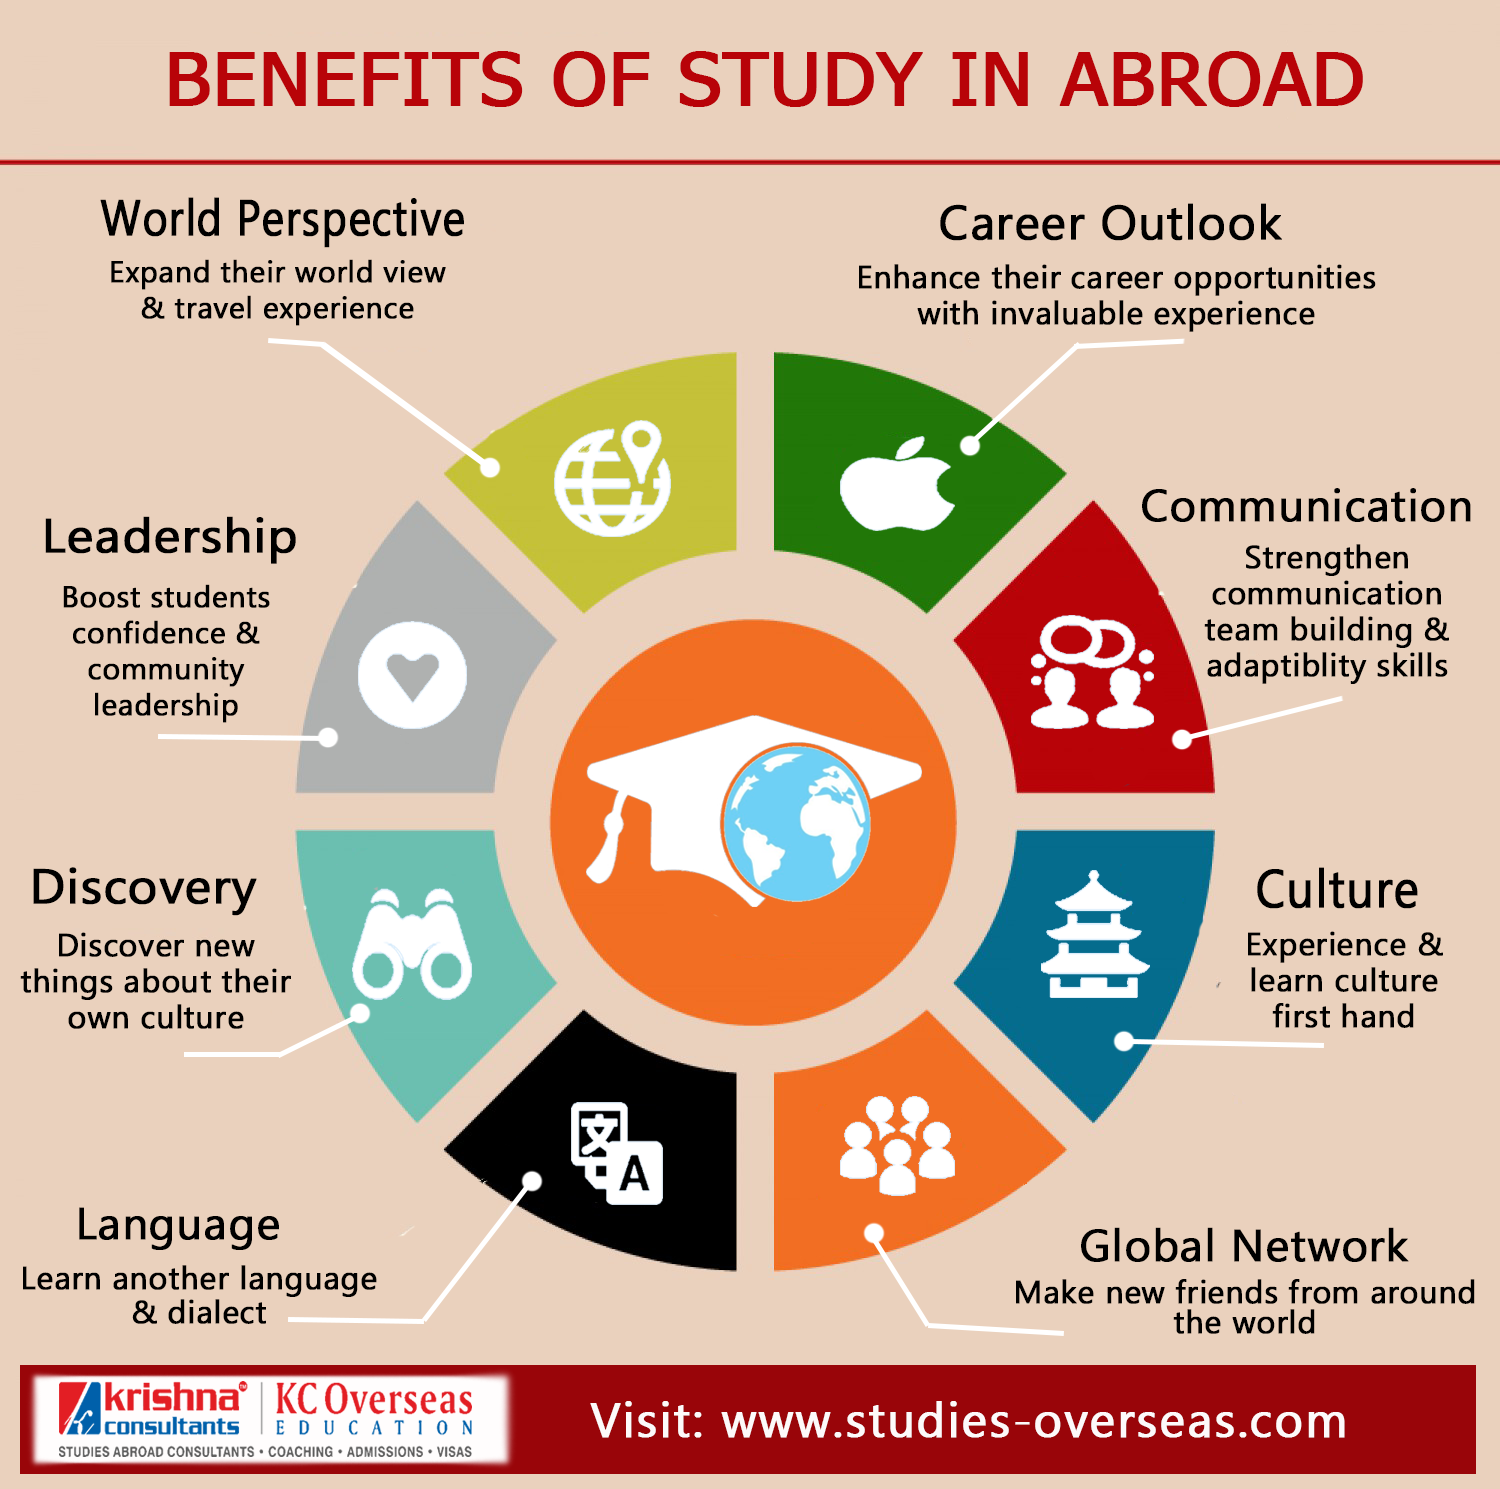 Benefits Of Study In Abroad Overseas Education Learn Culture Education